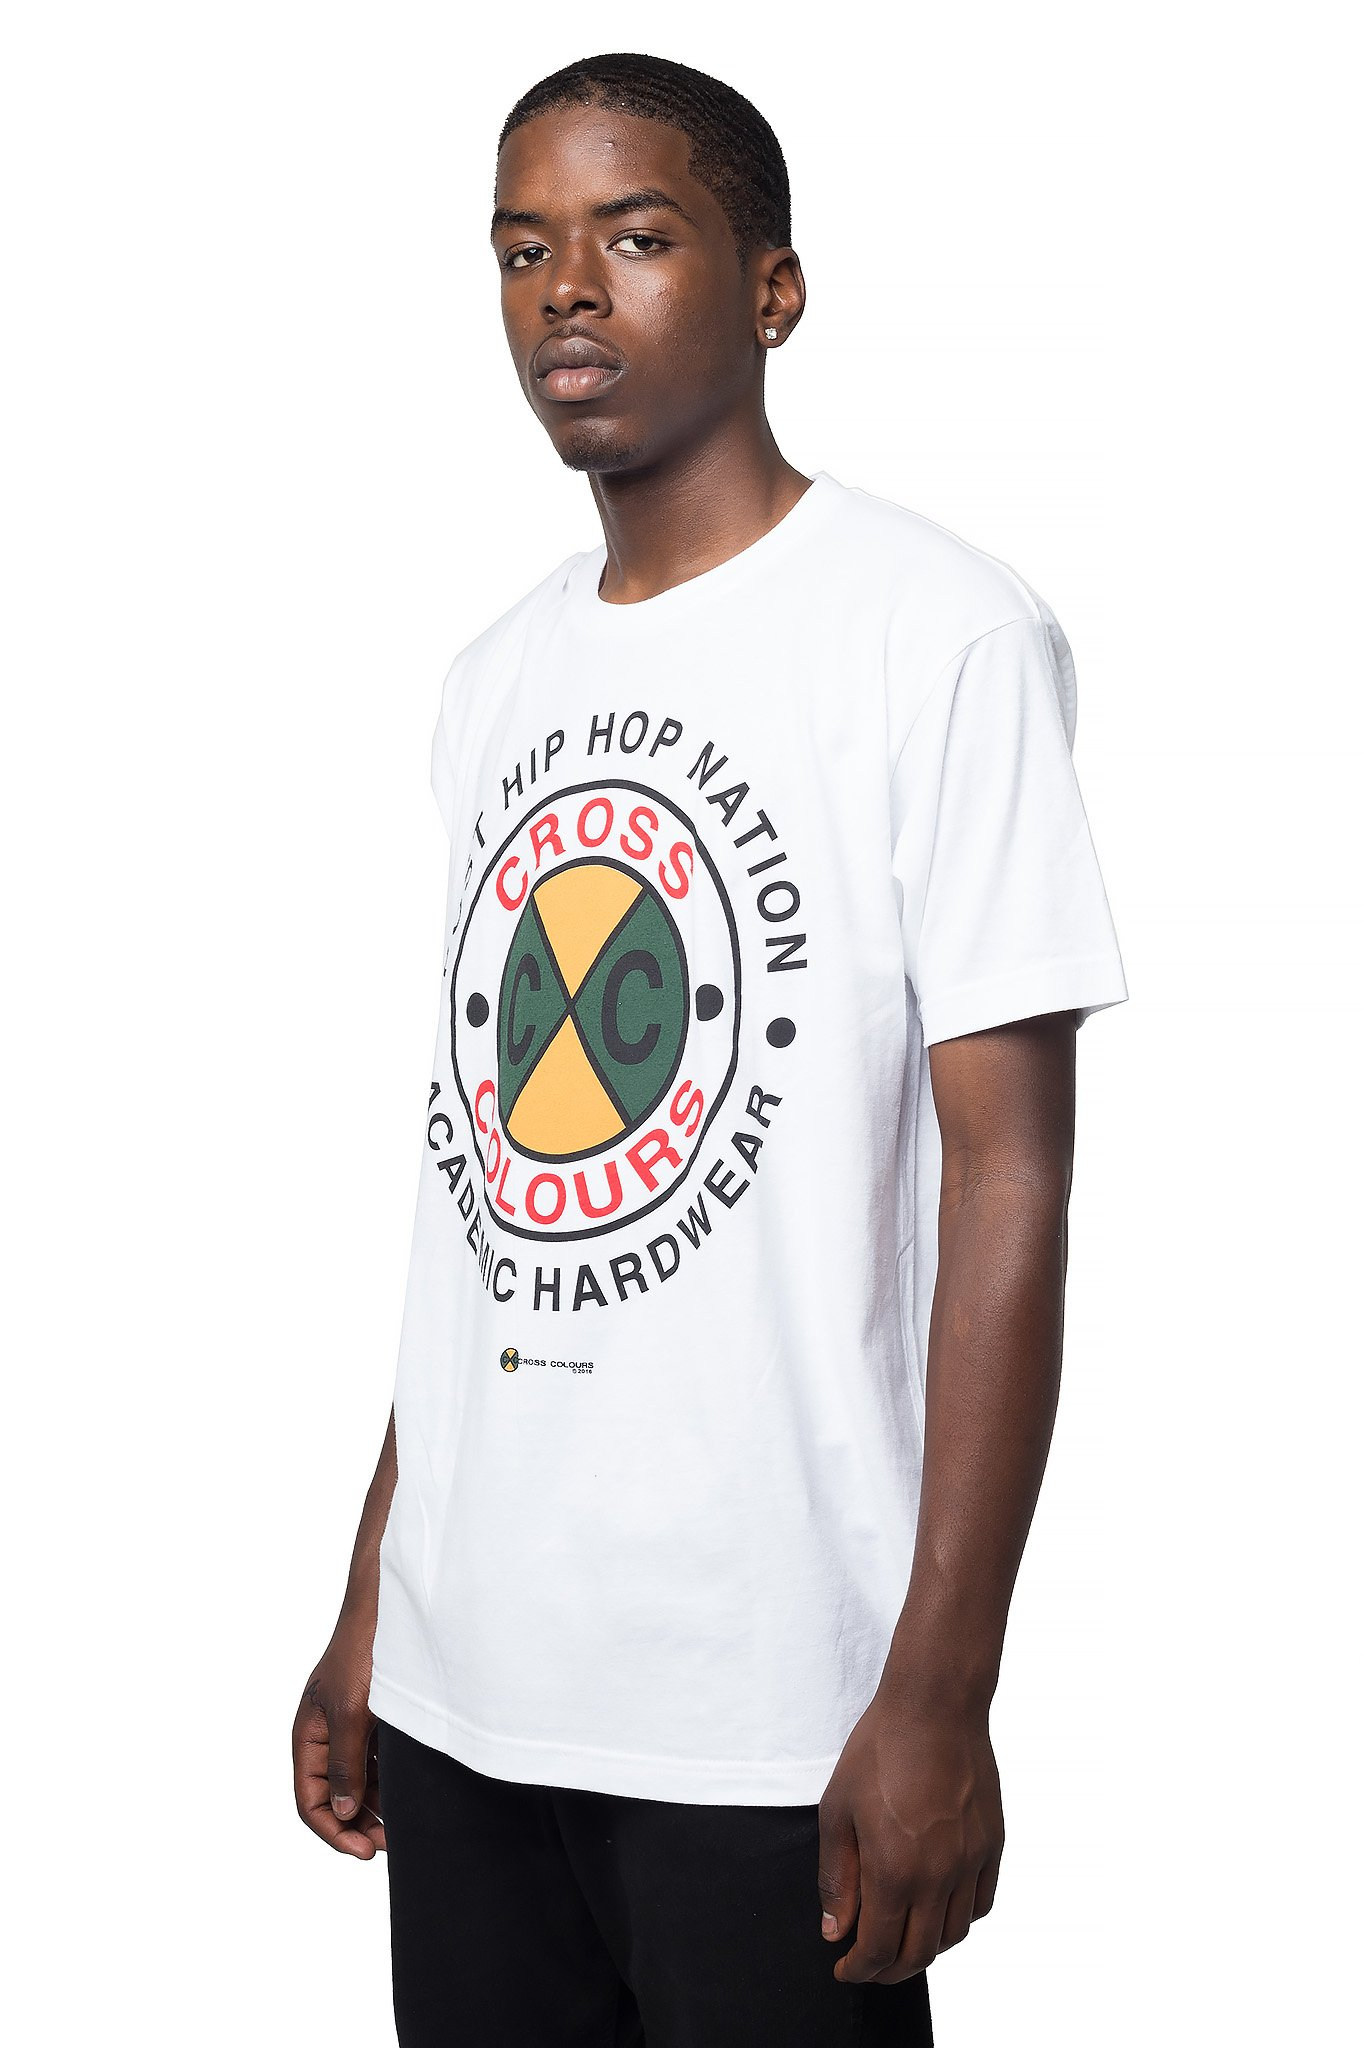 Cross_Colours_Academic_Hardwear_TShirt__White